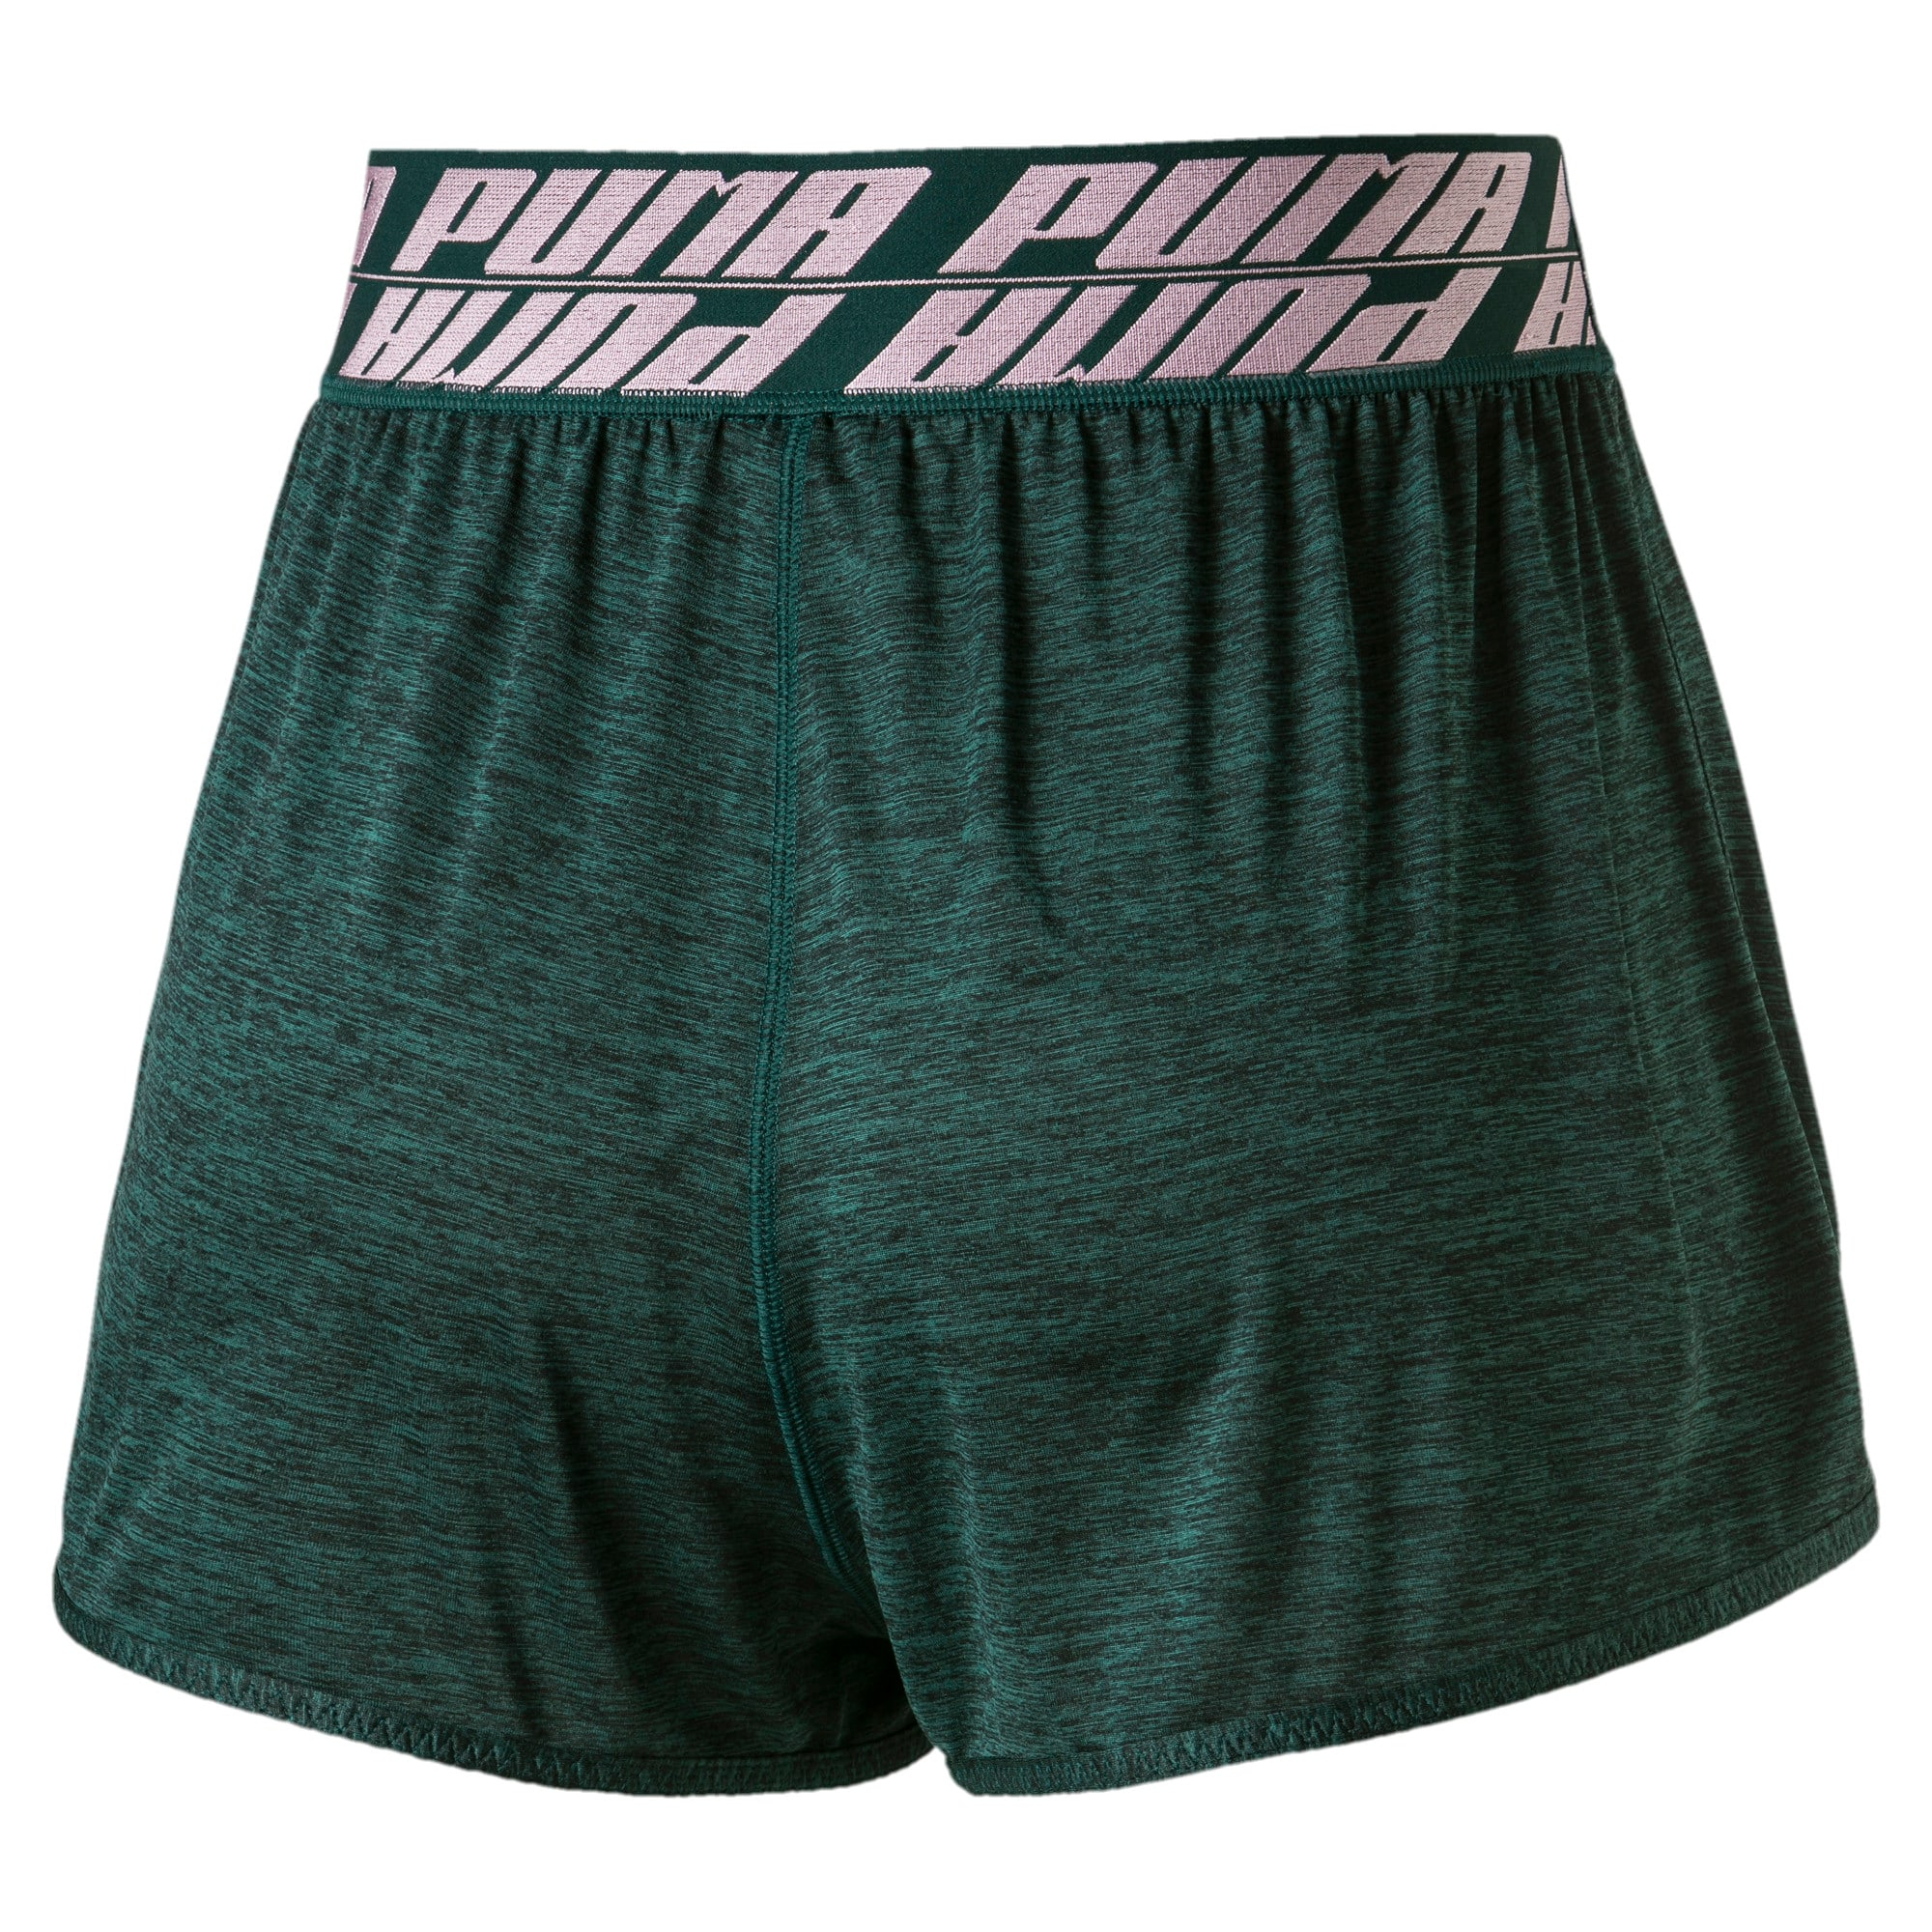 Thumbnail 5 of Own It Women's Training Shorts, Ponderosa Pine Heather, medium